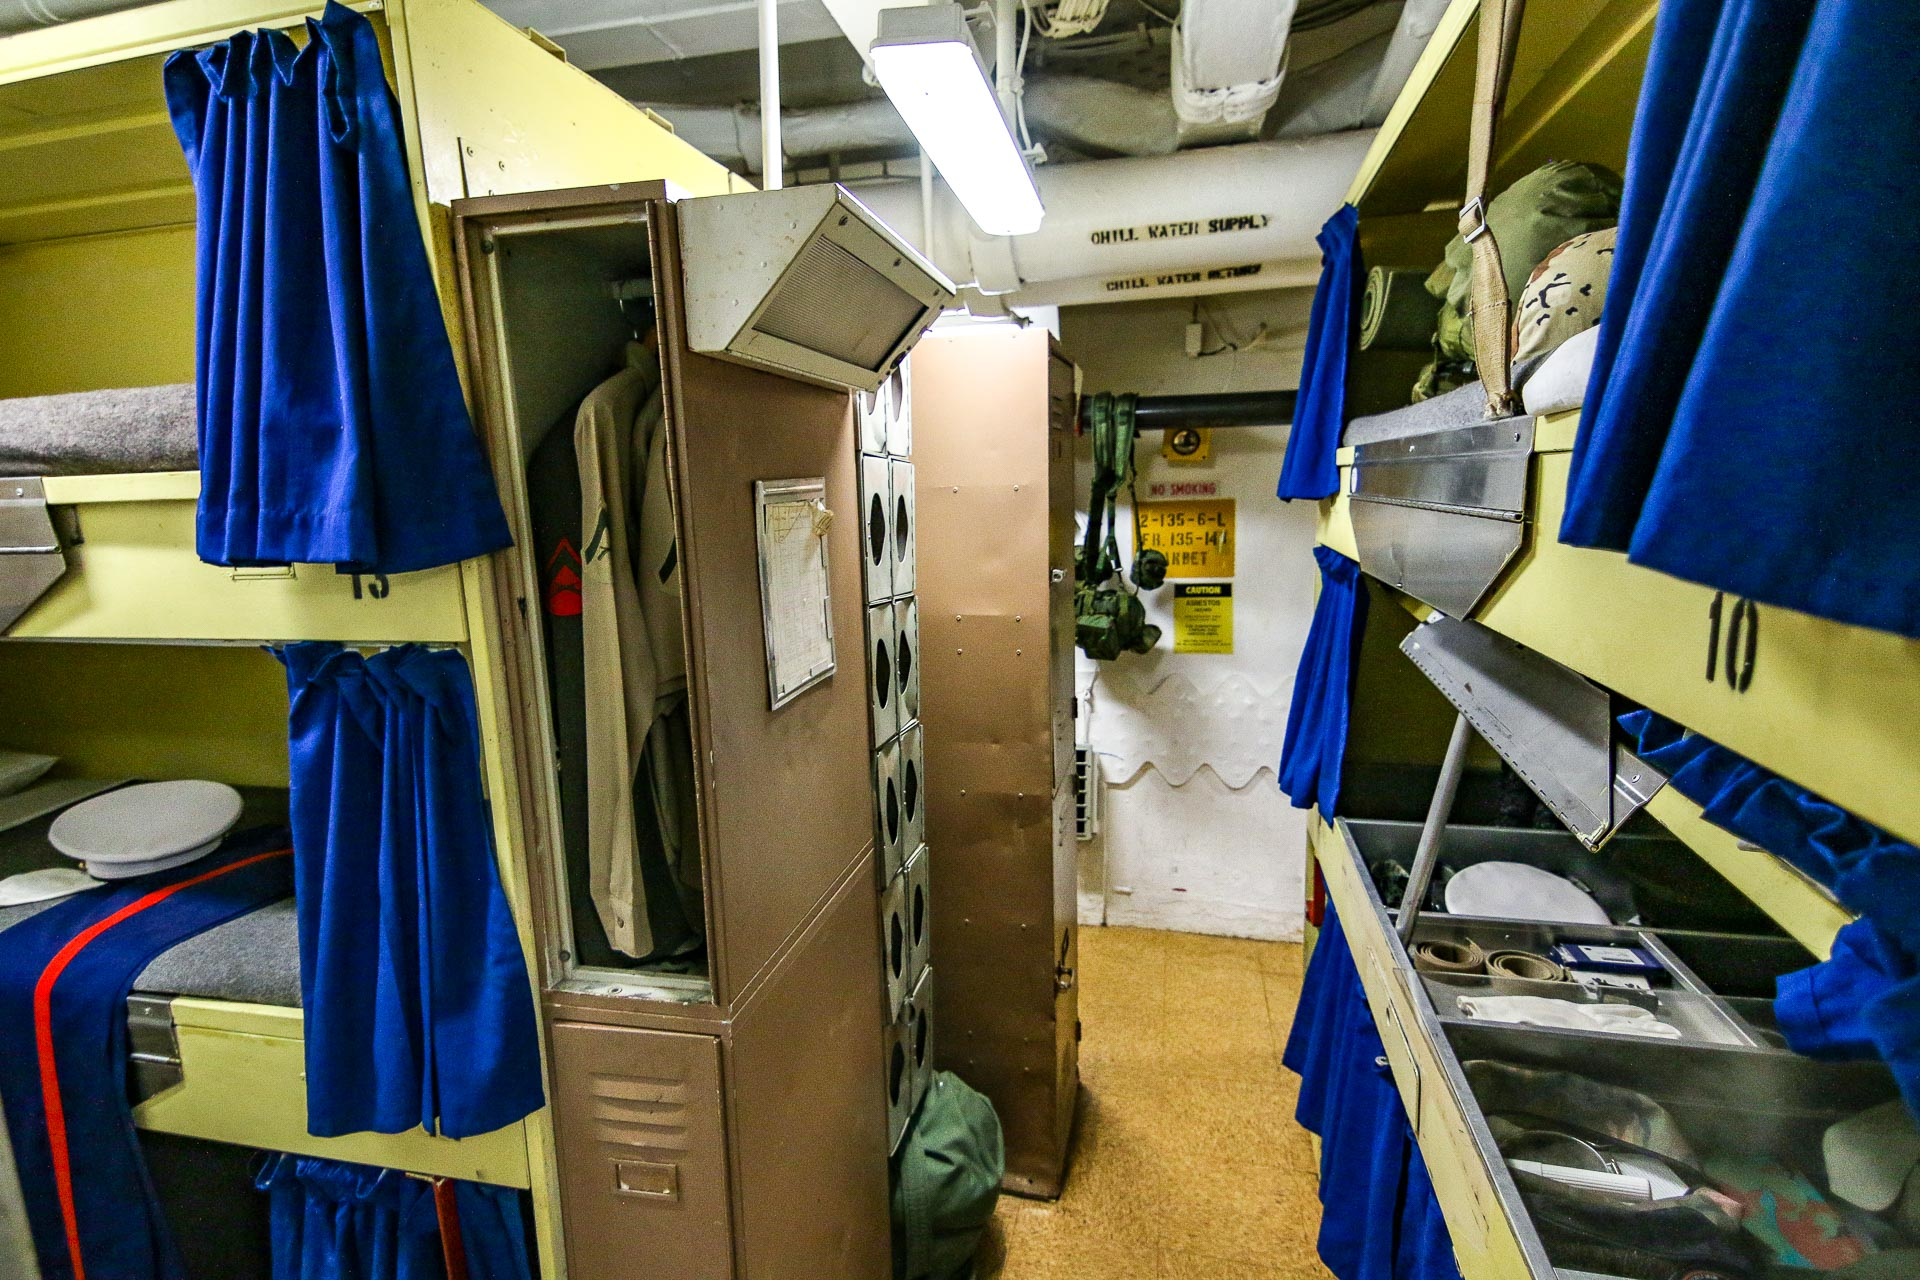 USS Missouri Interior Crews Room